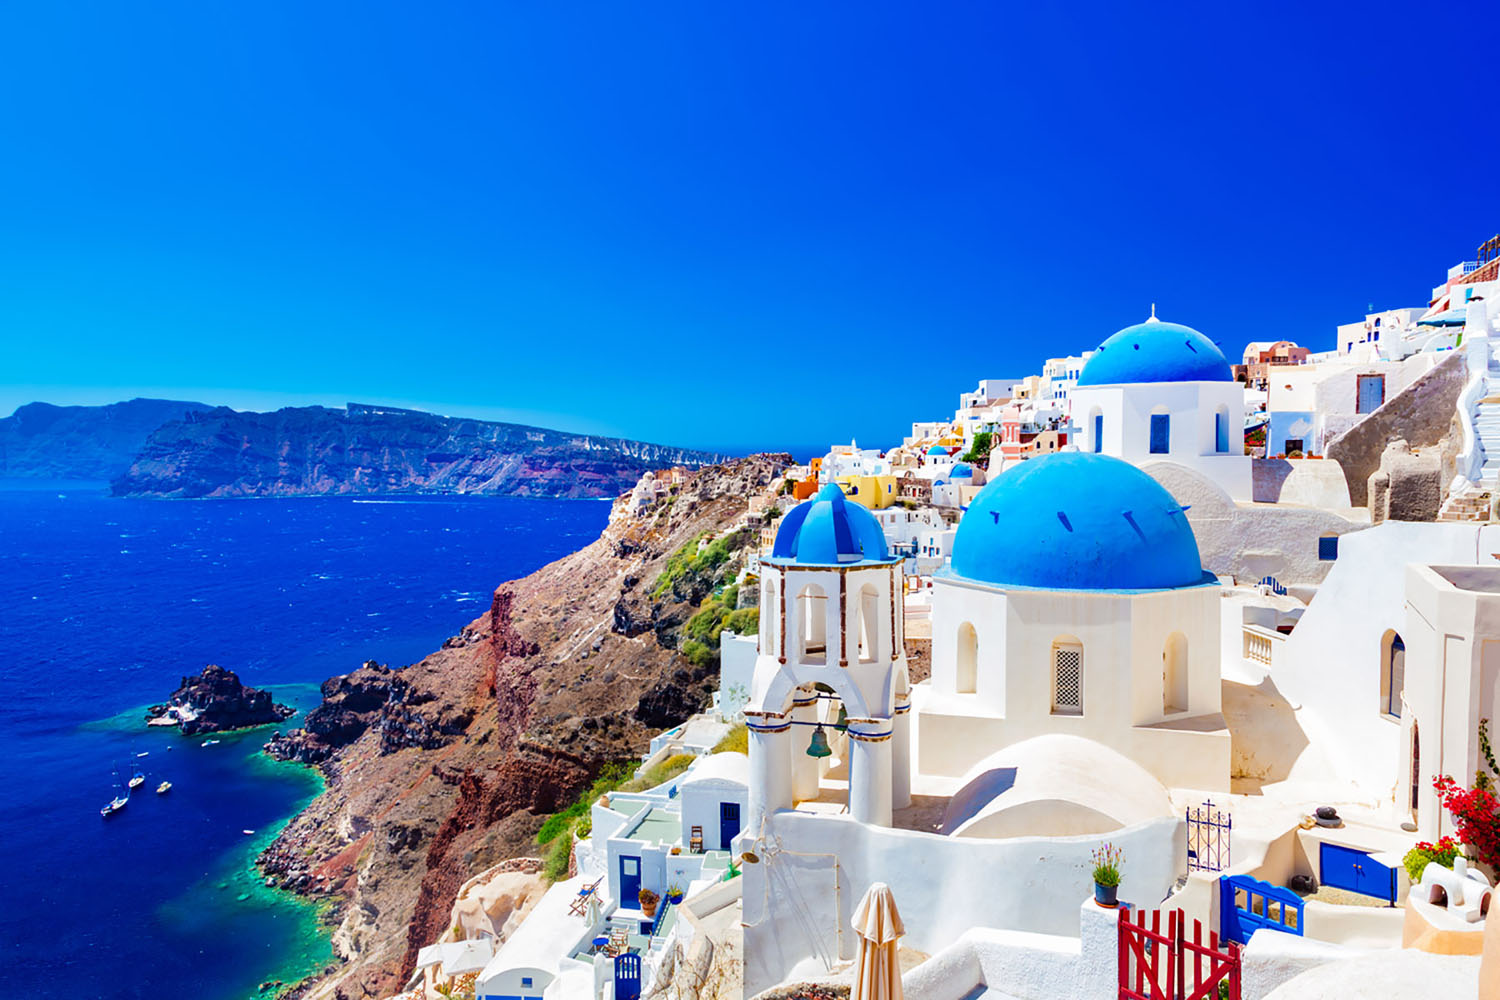 Santorini is stunning any time of day.